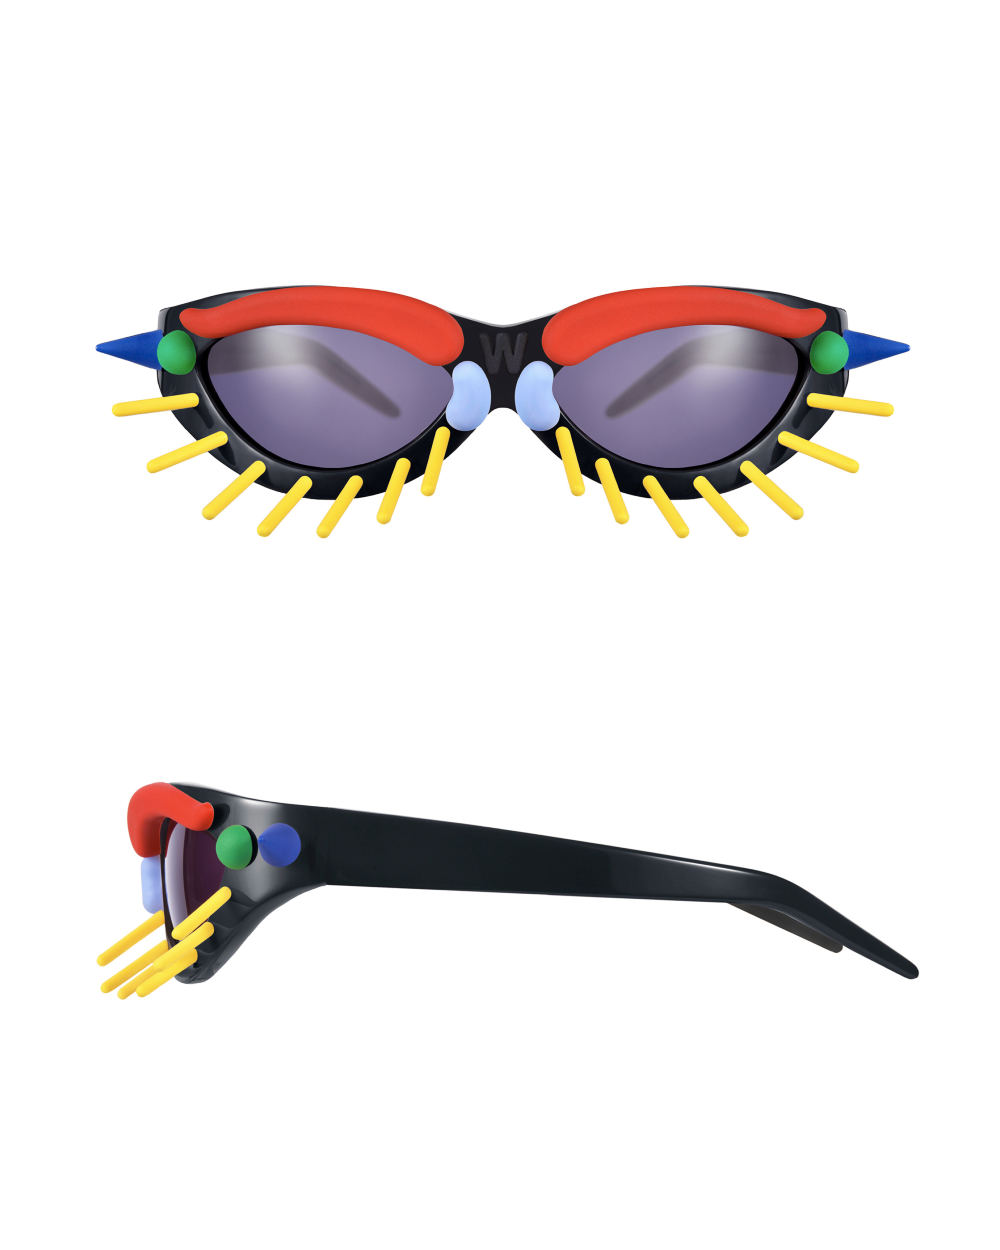 Toy Glasses Model 1. Black with coloured pins